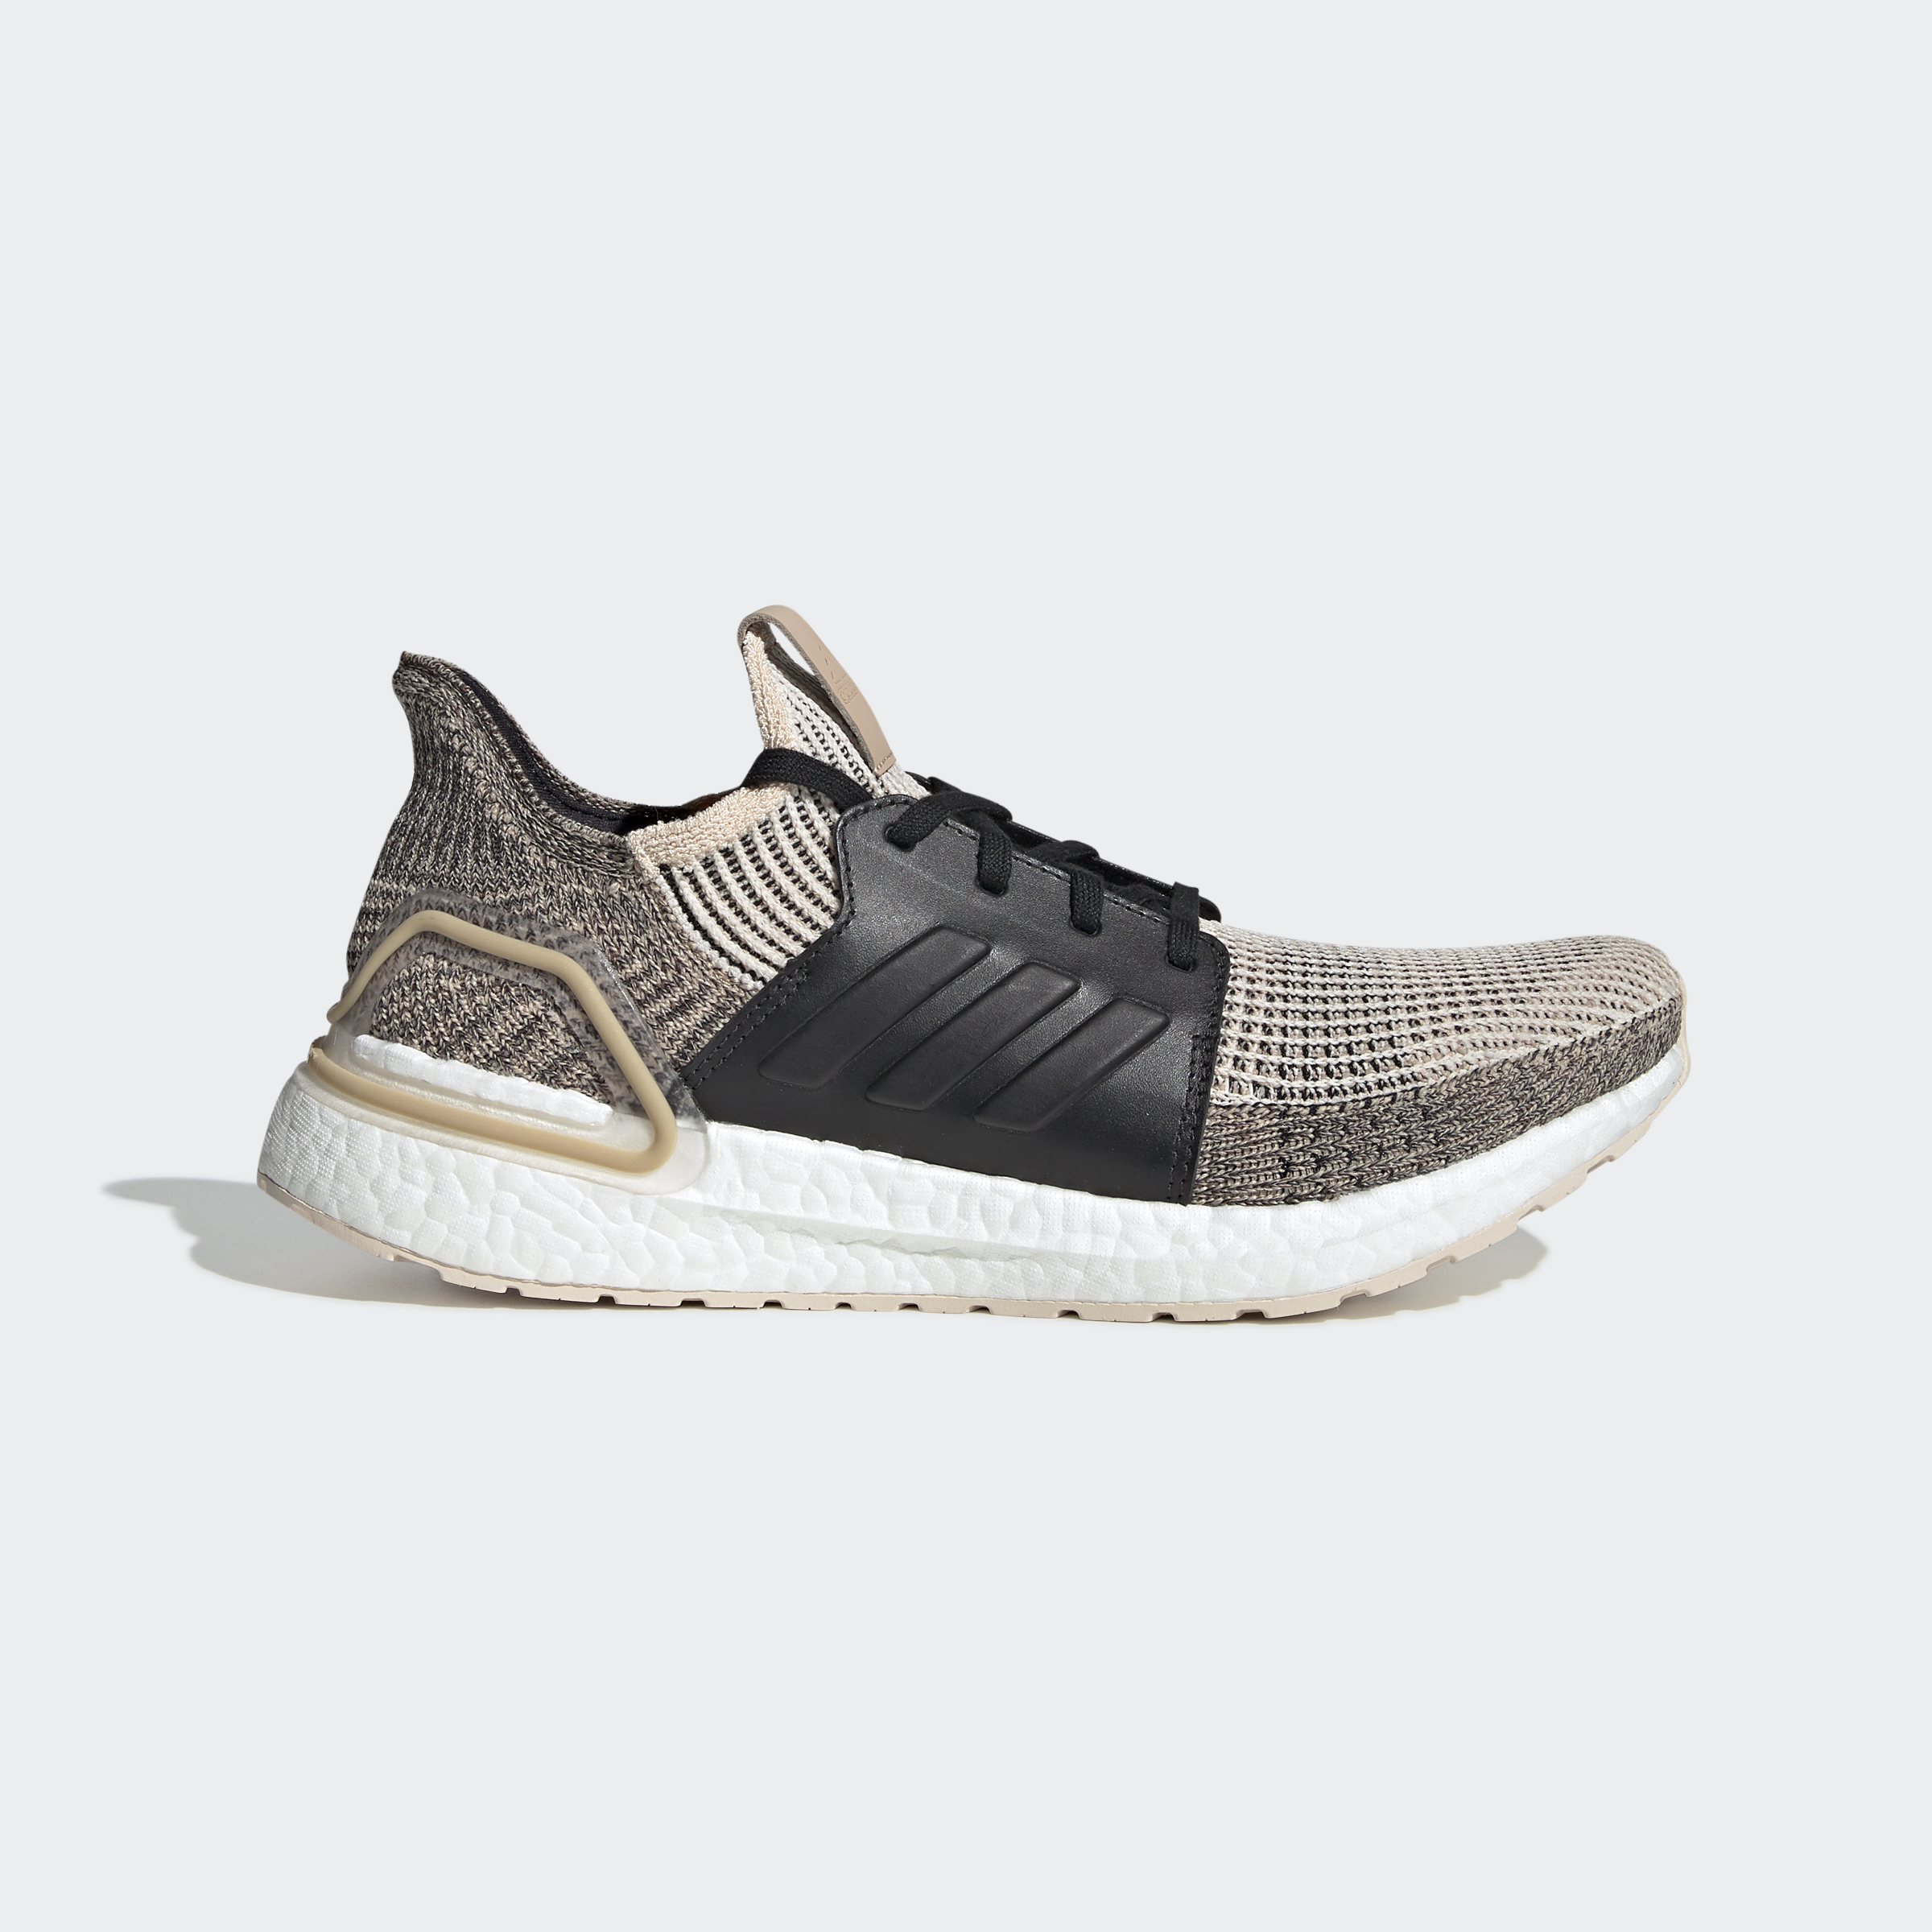 adidas-Ultraboost-19-Shoes-Athletic-amp-Sneakers thumbnail 71